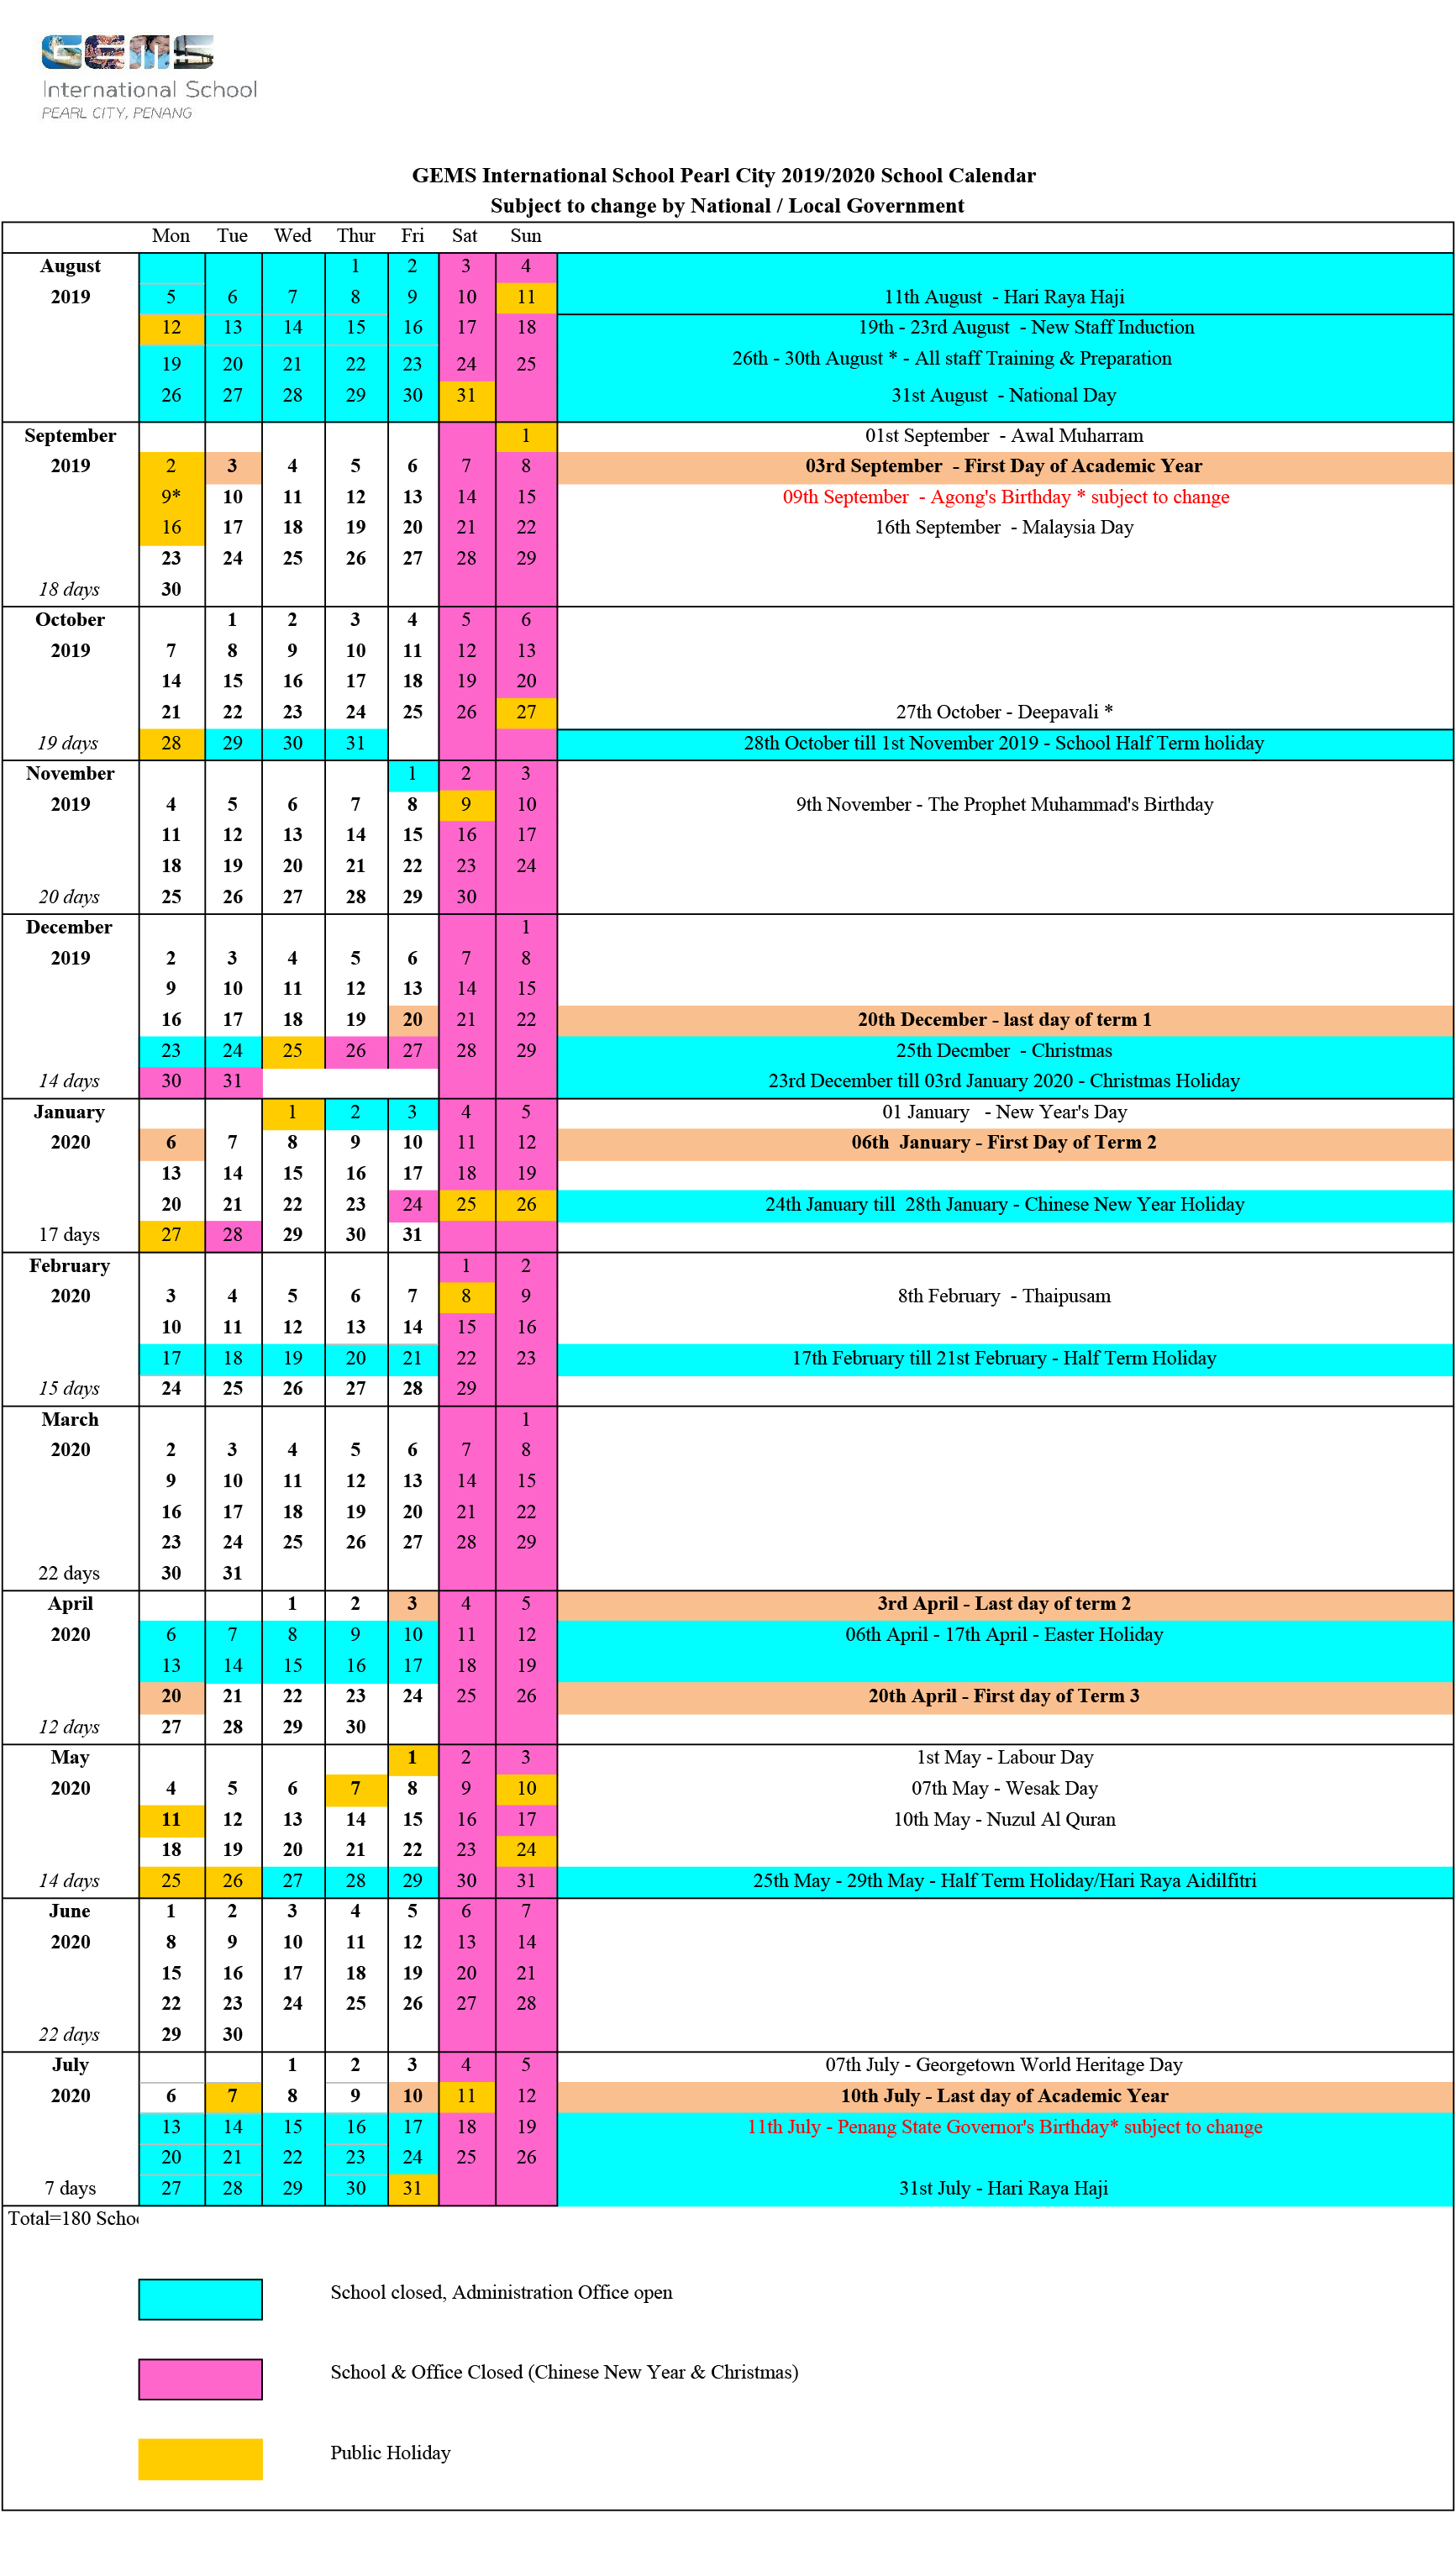 2019/2020 School Calendar - Gems International School